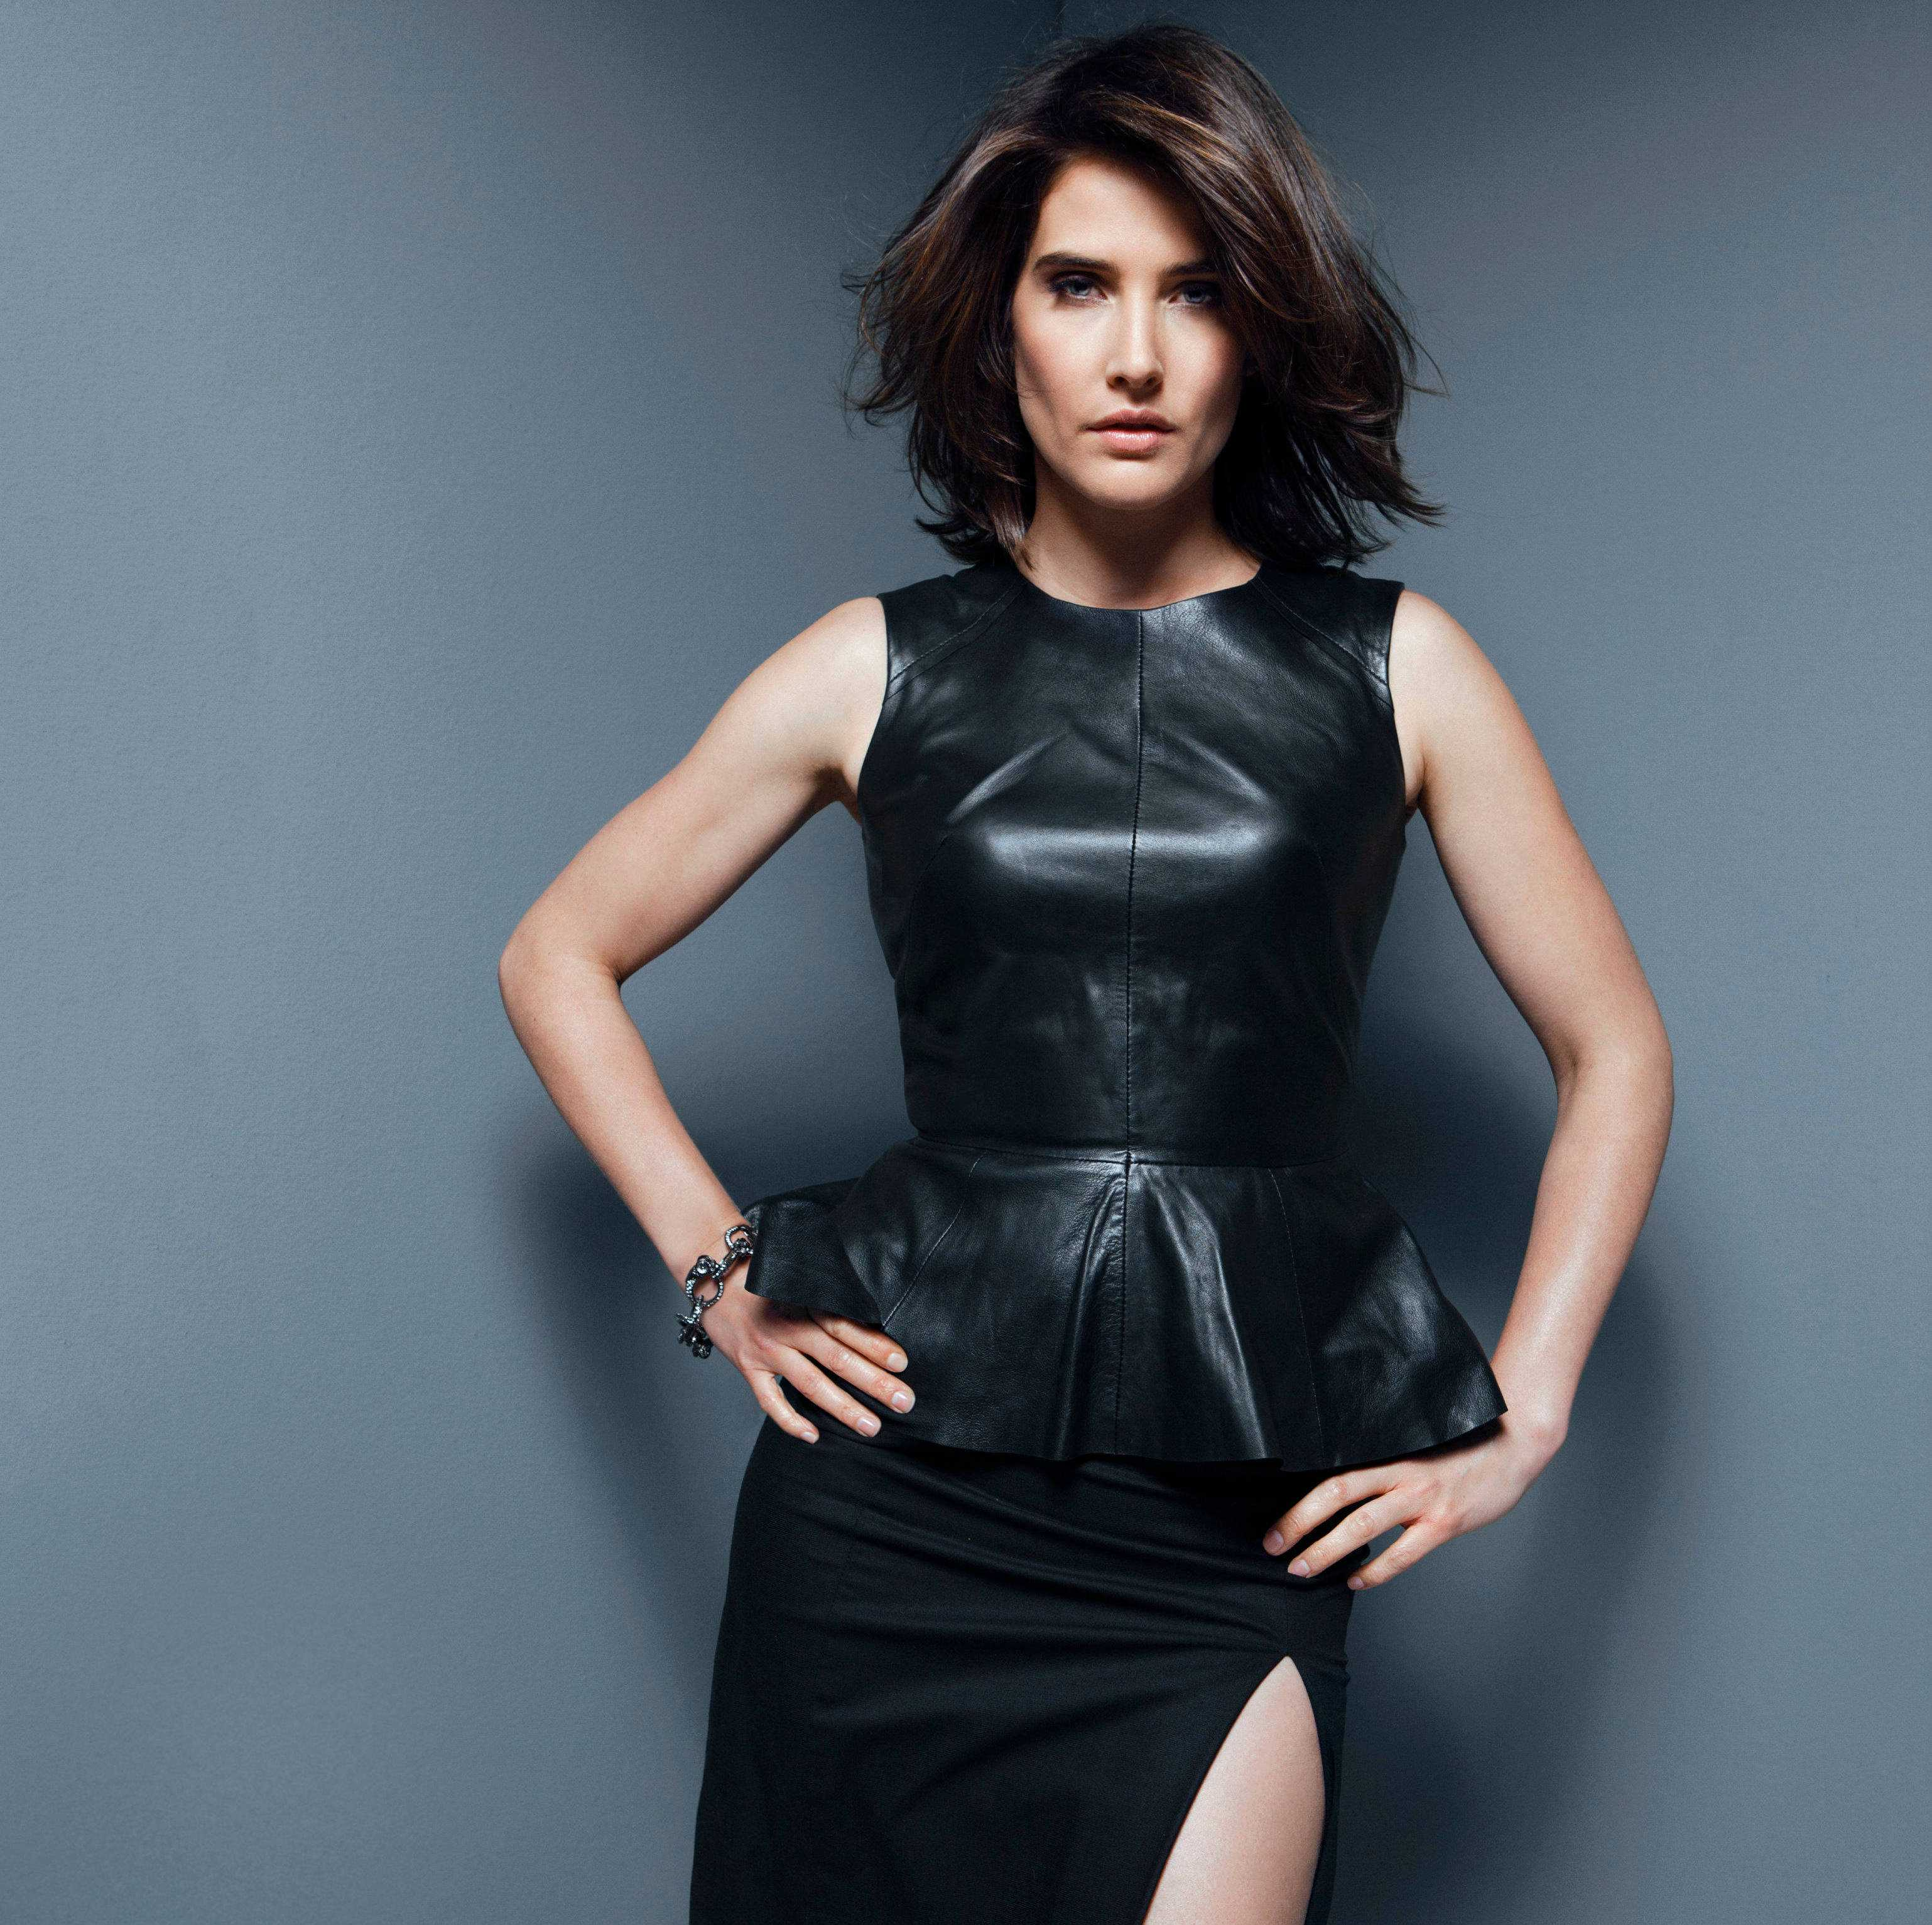 Cobie Smulders Famous For